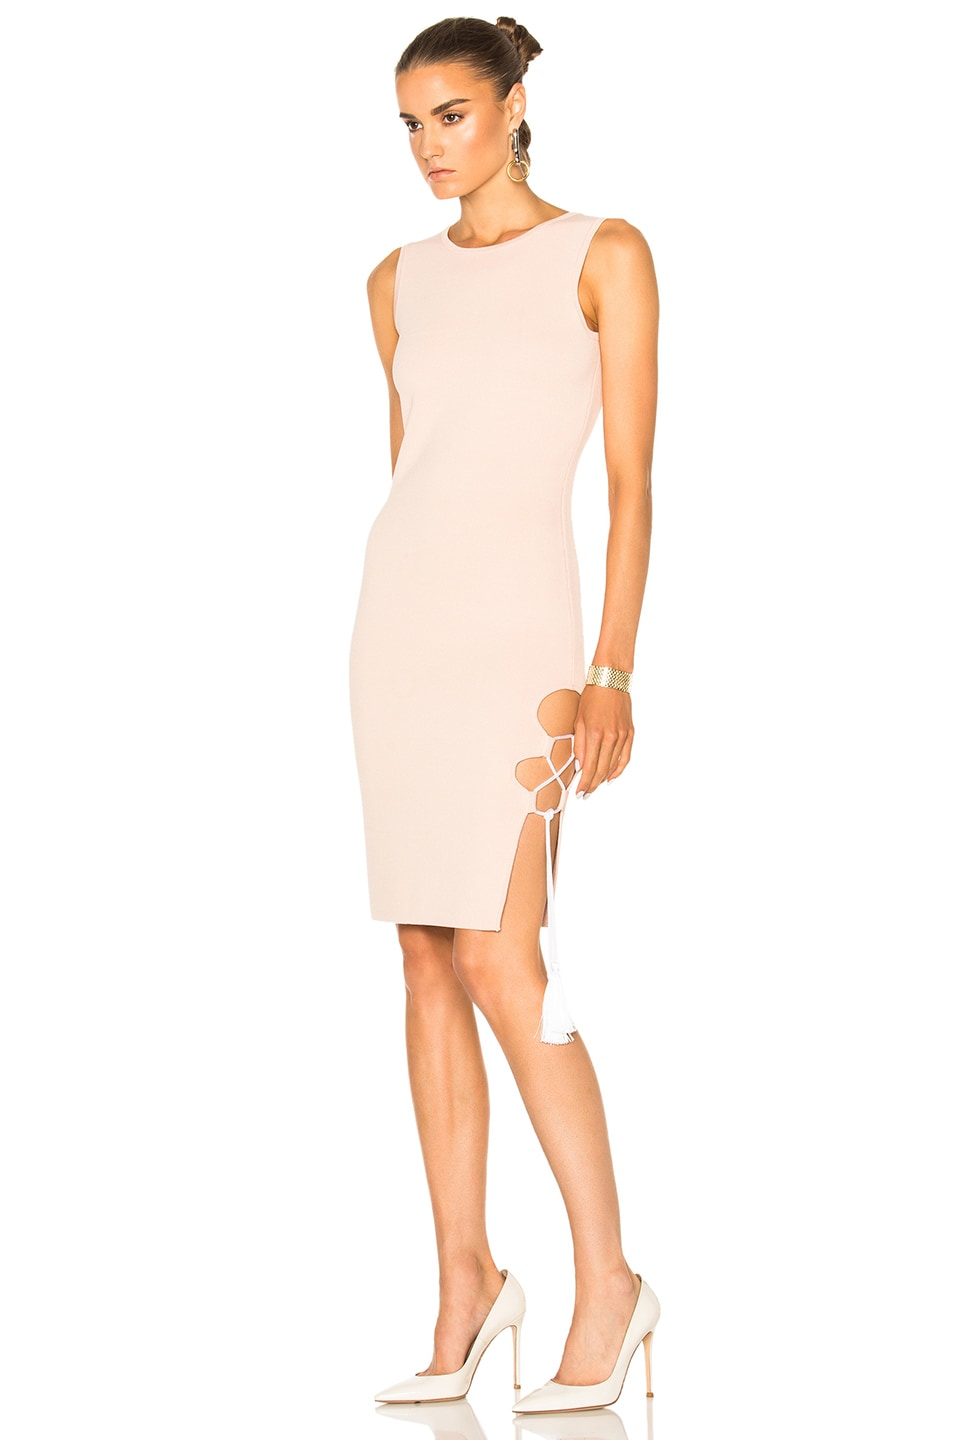 Image 2 of JONATHAN SIMKHAI for FWRD Knit Lace-up Dress in Nude